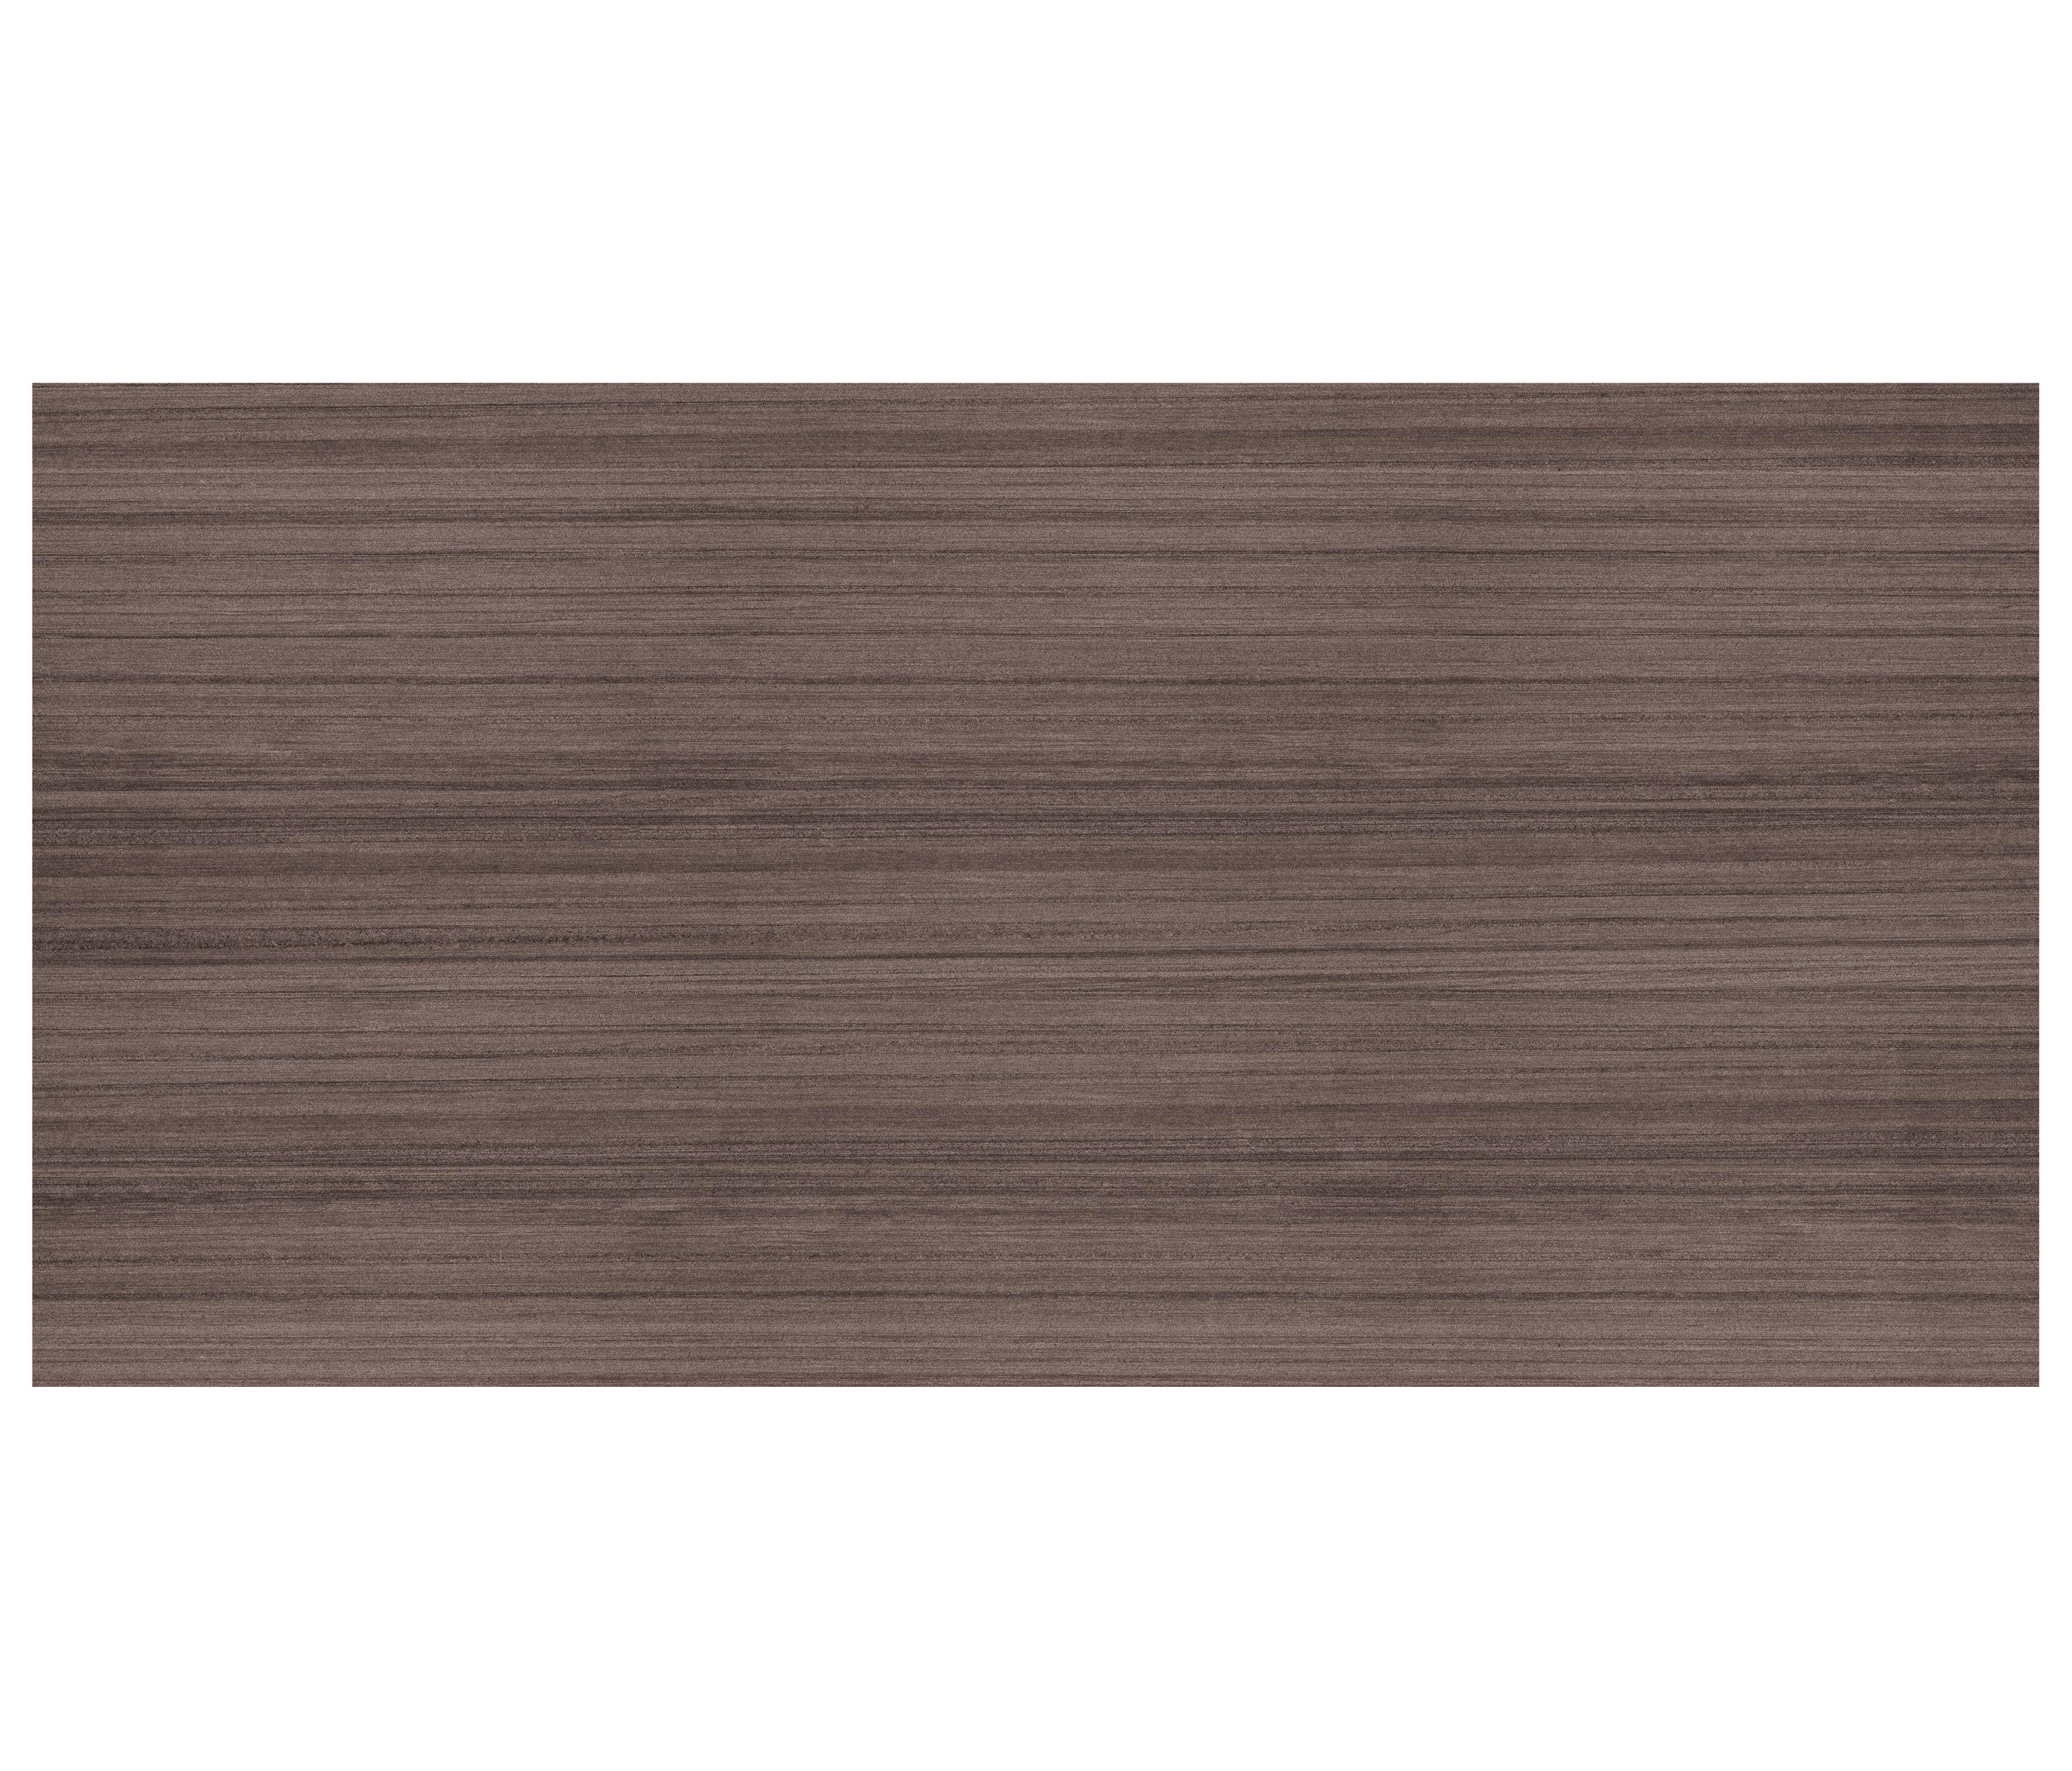 Fusion brown carrelage pour sol de refin architonic for Carrelage refin